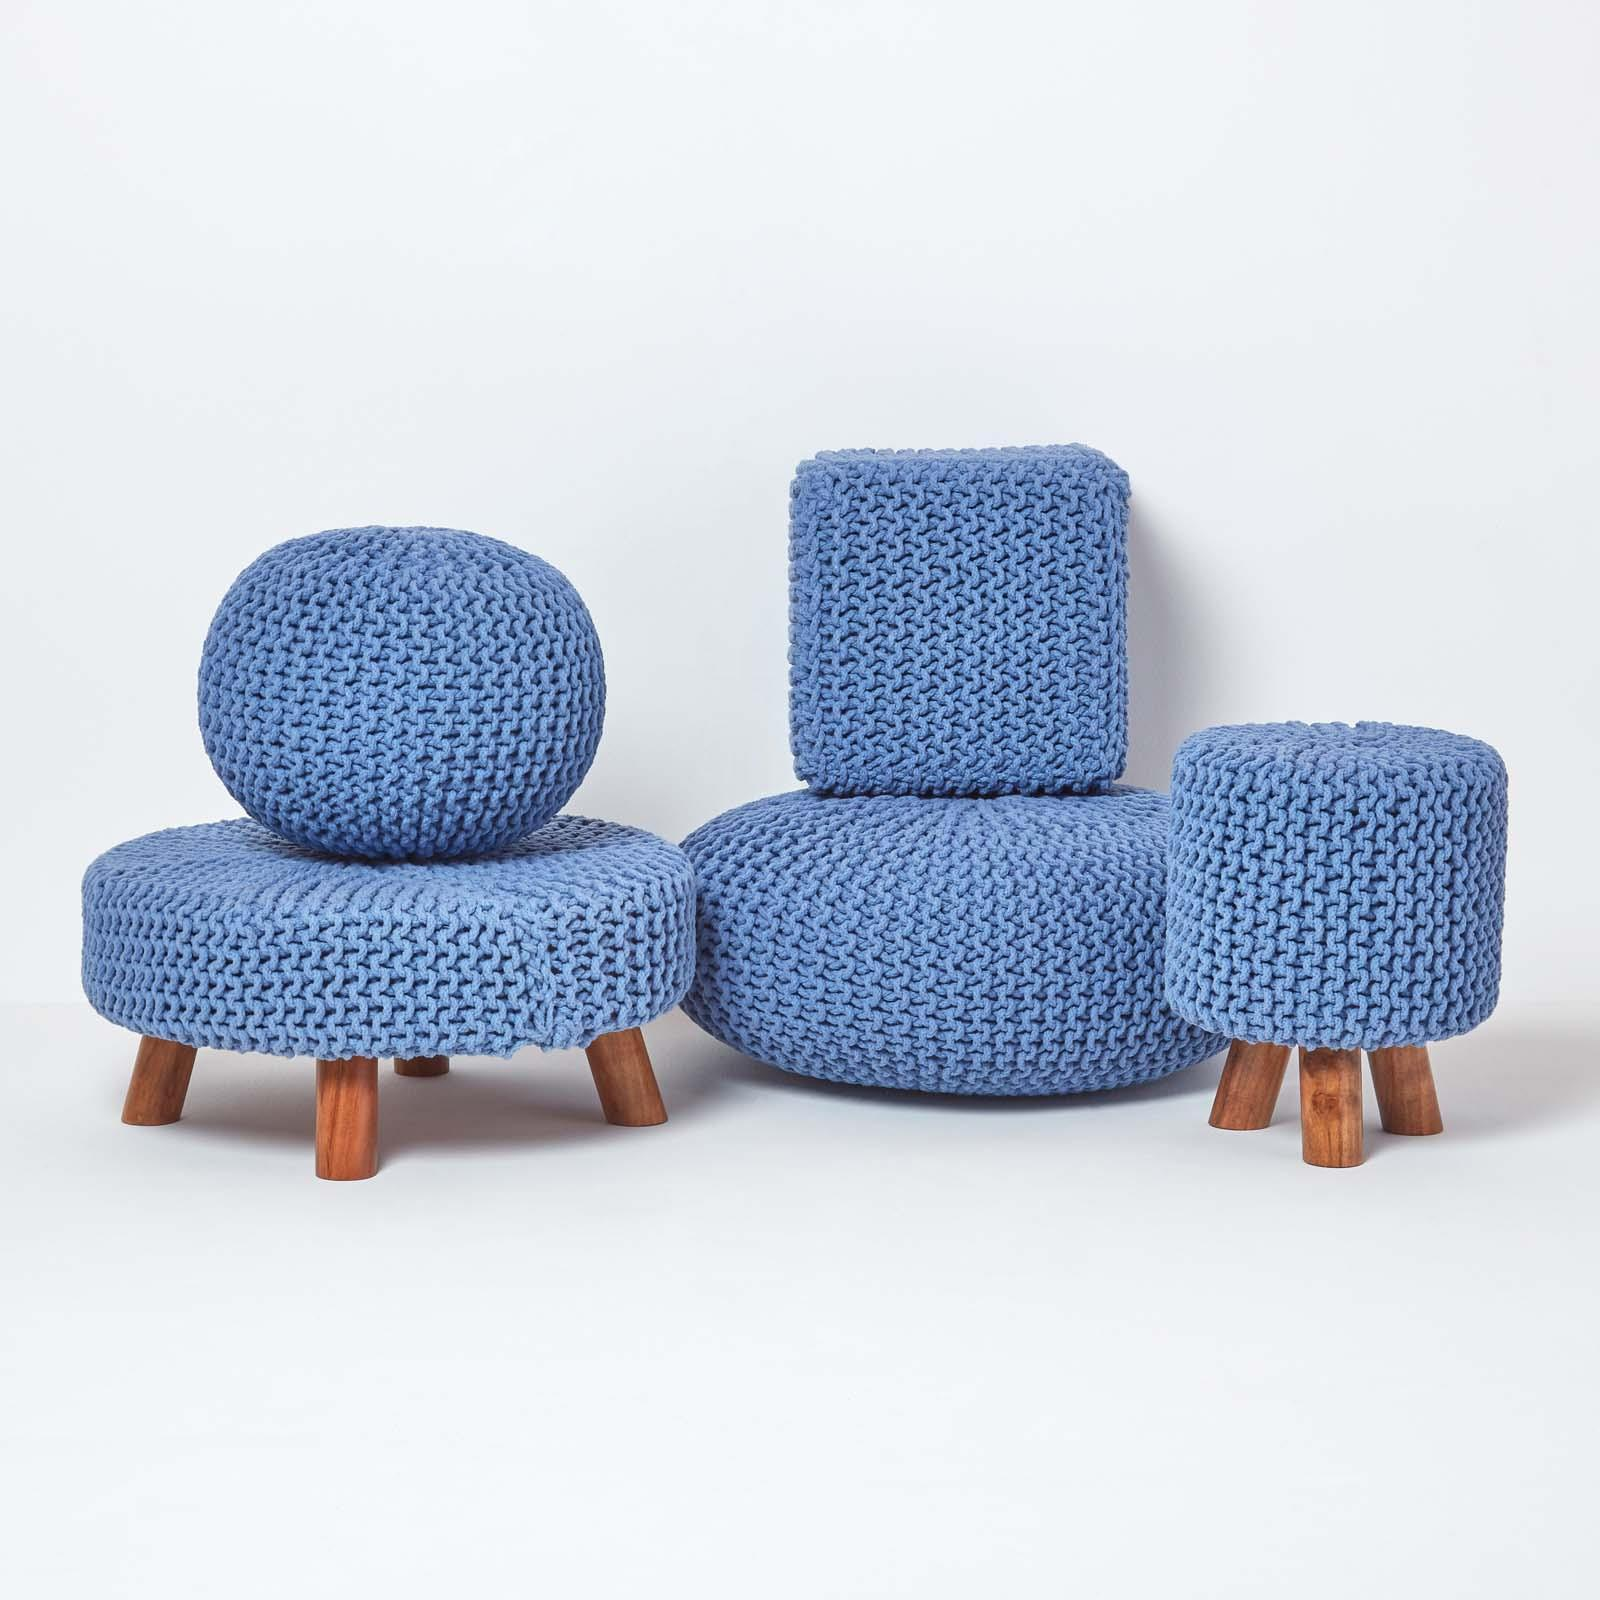 Hand-Knitted-100-Cotton-Pouffes-Round-Sphere-Or-Cube-Square-Chunky-Footstools thumbnail 25